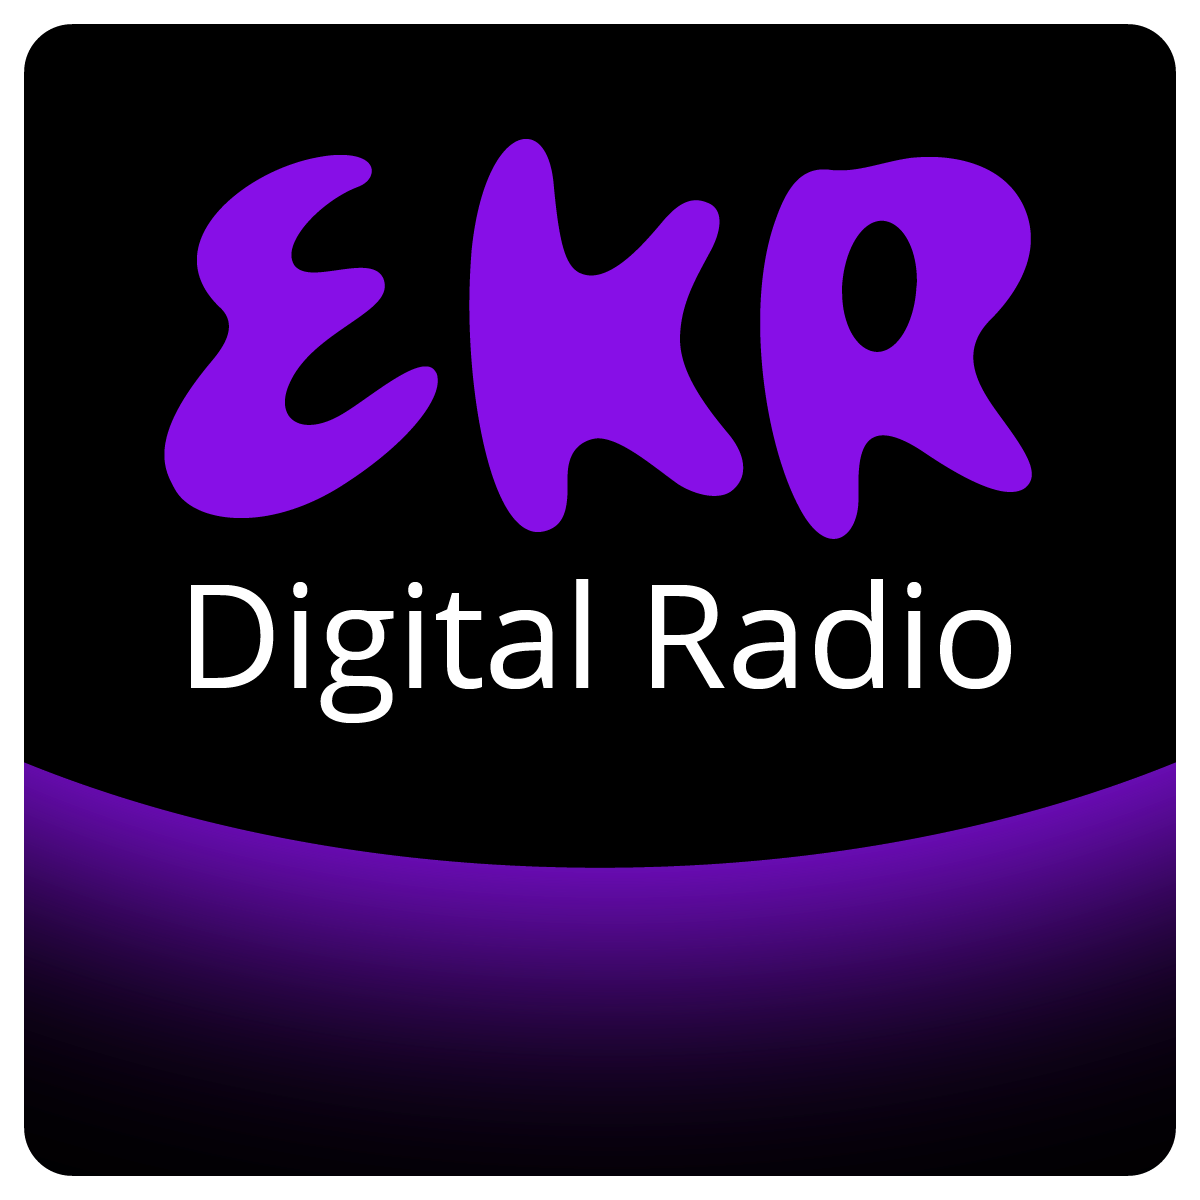 EKR - EASY ROCK PARADISE (http://ekrdigital.com/player/#/rock-radio)